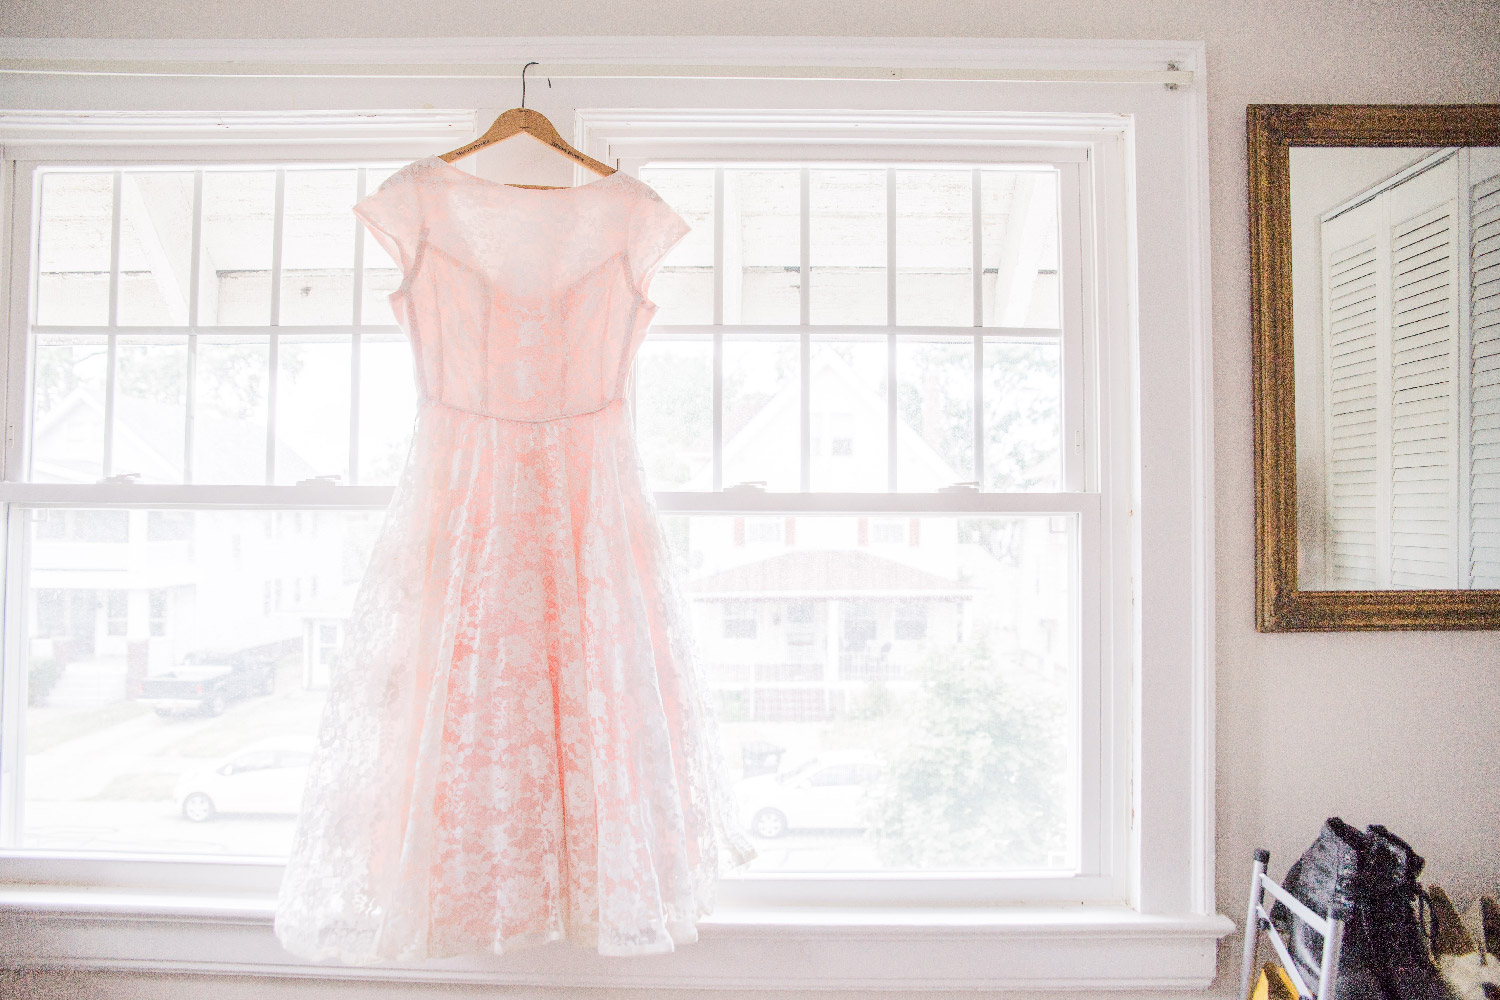 Bethany's pink lace wedding dress hanging in window of their Cleveland Ohio home Lea Marie Photography